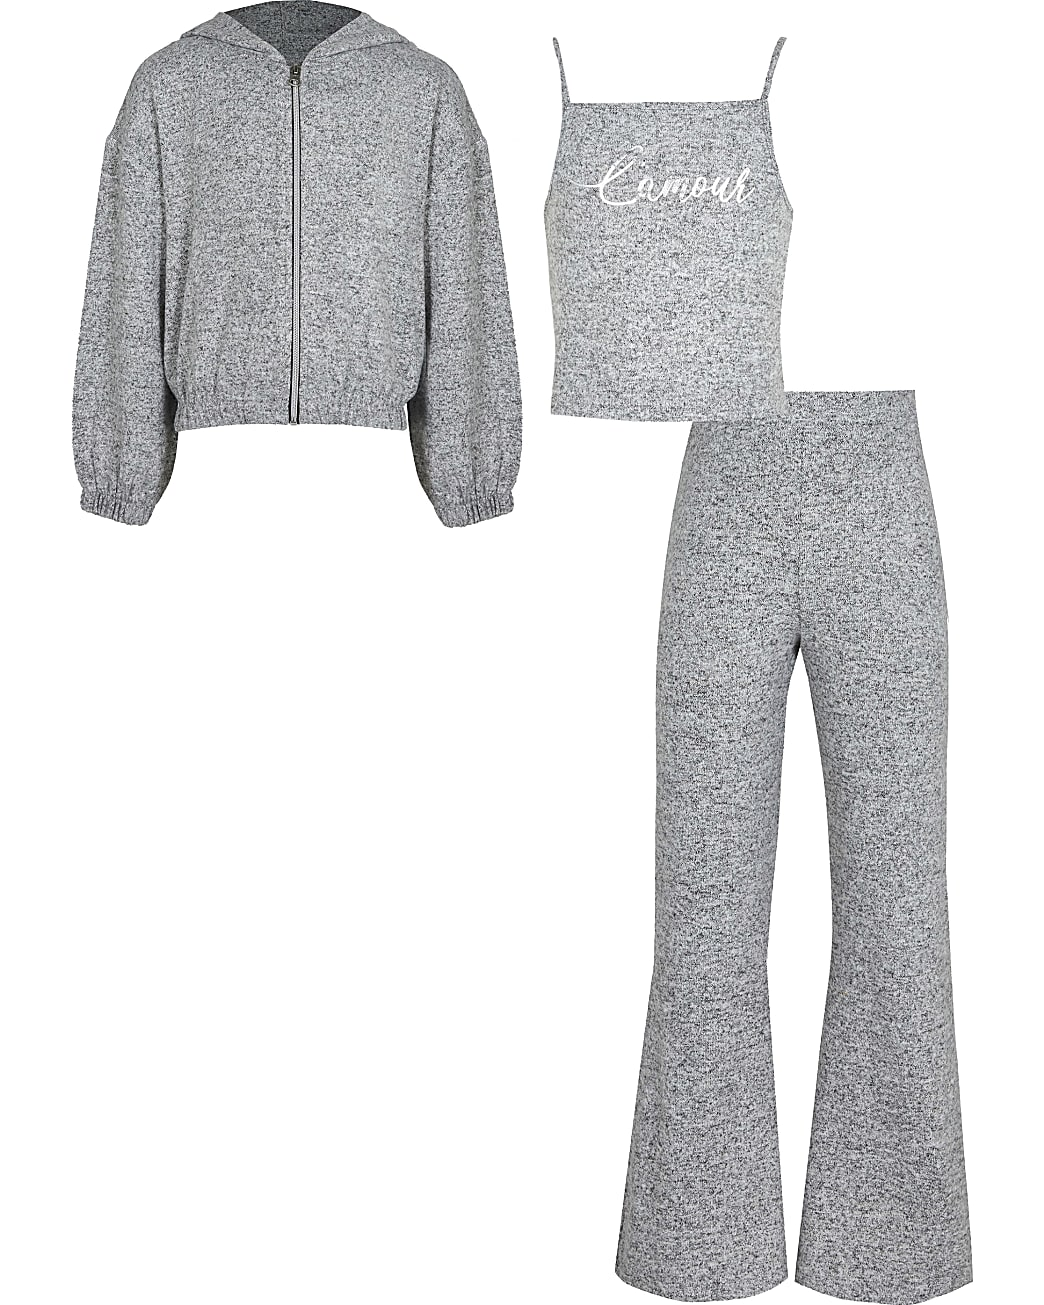 Girls grey 'L'amour' cosy hoodie outfit